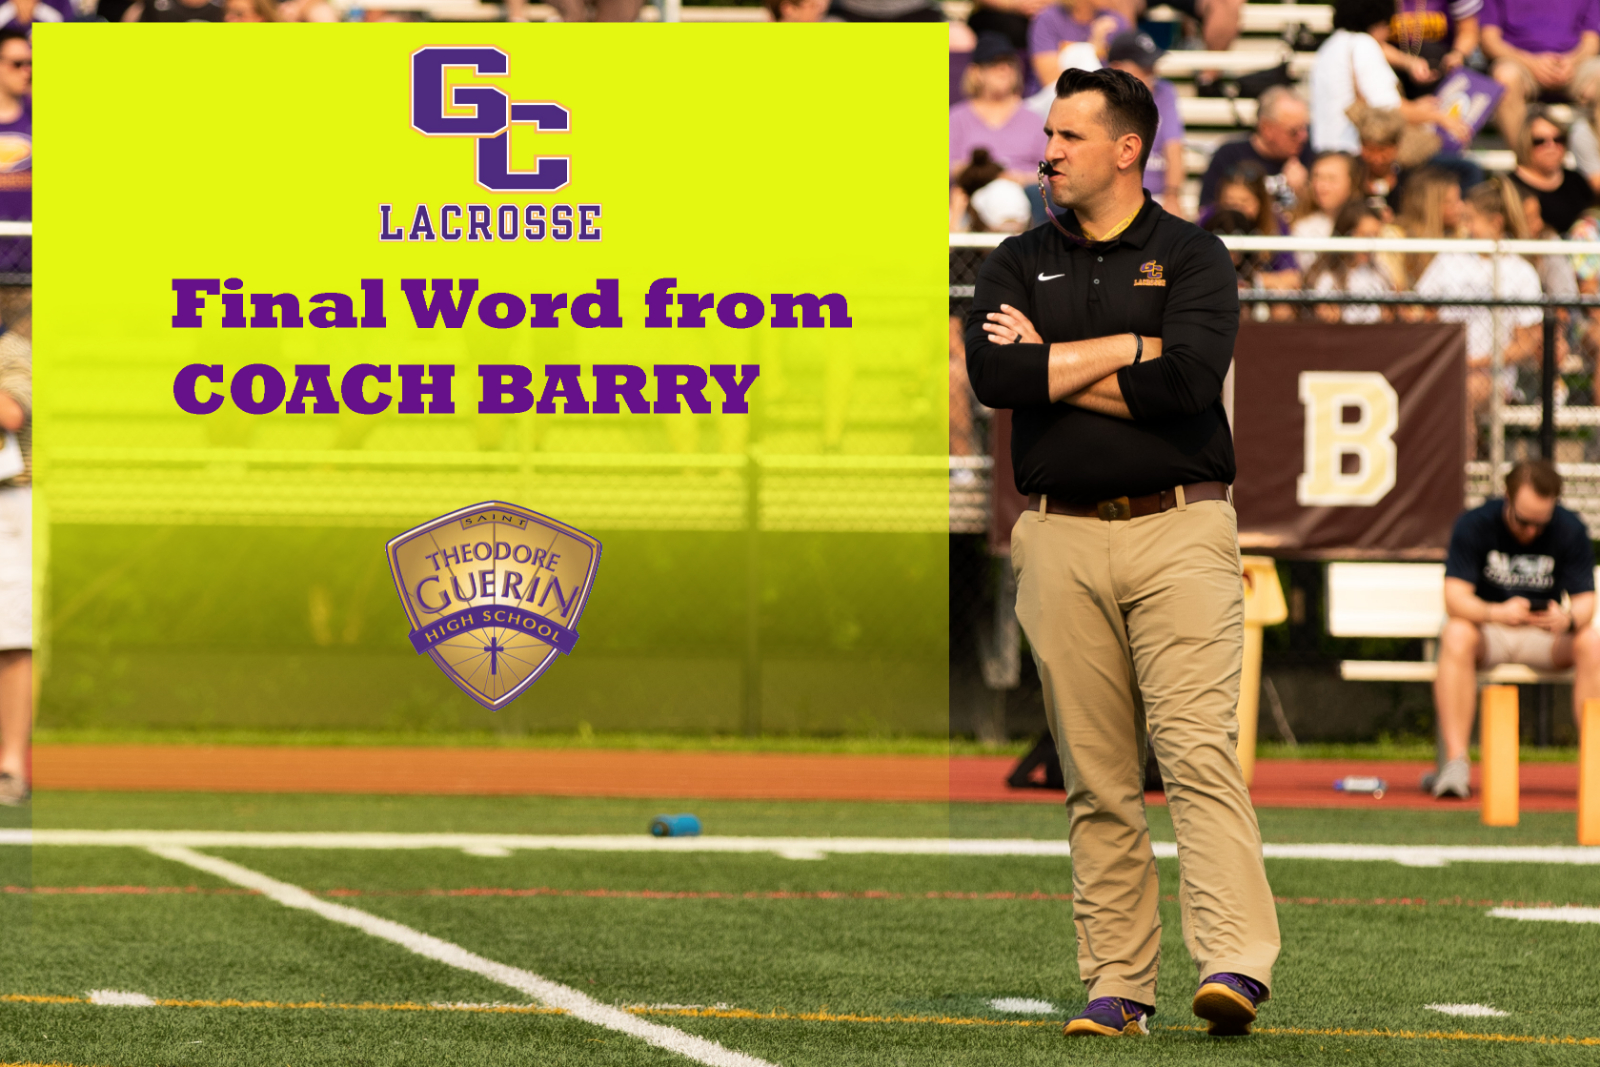 A Final Word from Coach Barry